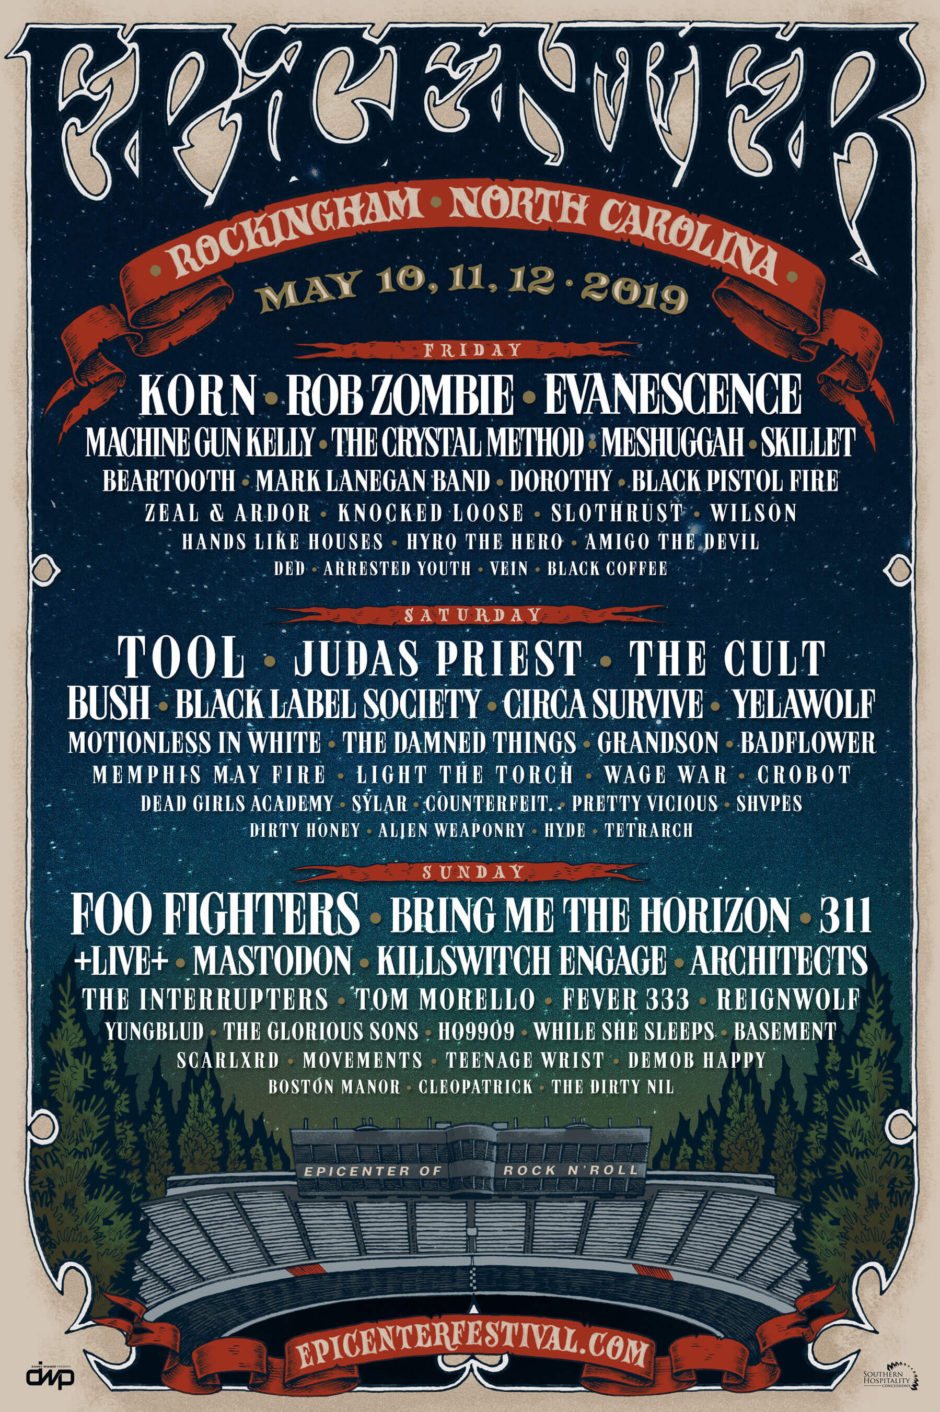 Epicenter music festival north carolina